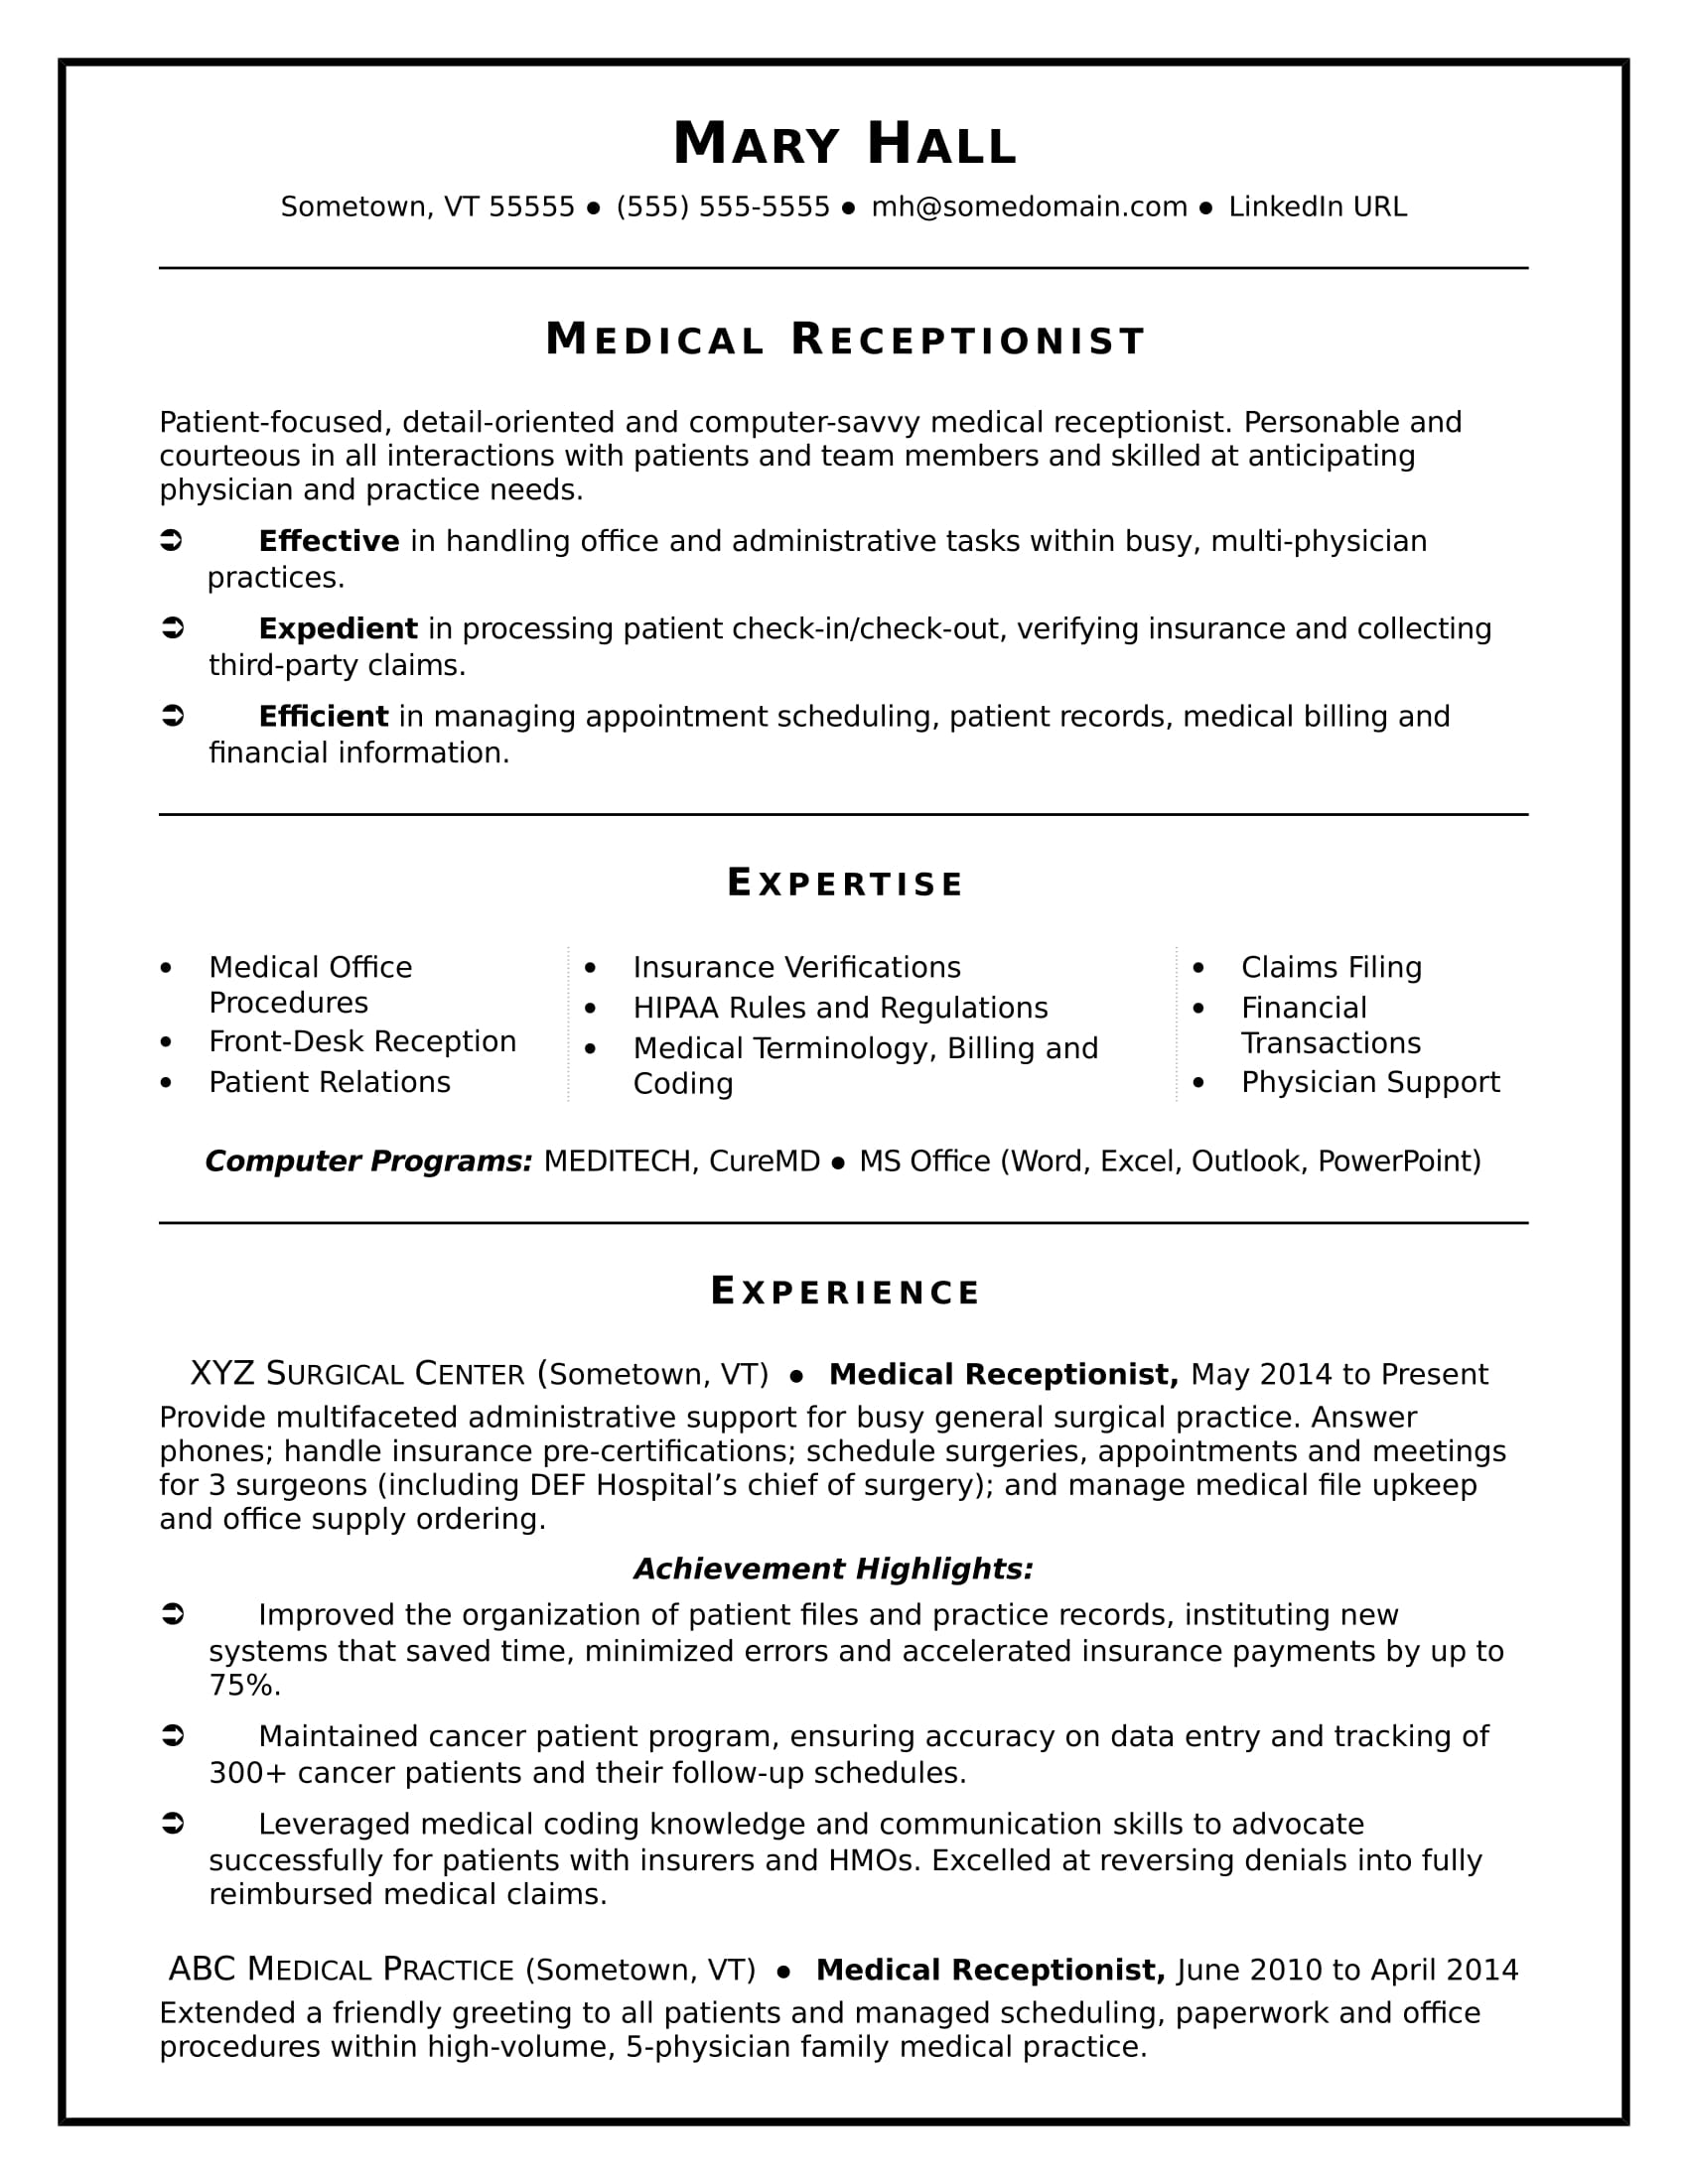 medical receptionist resume sample - I Need A Resume Template